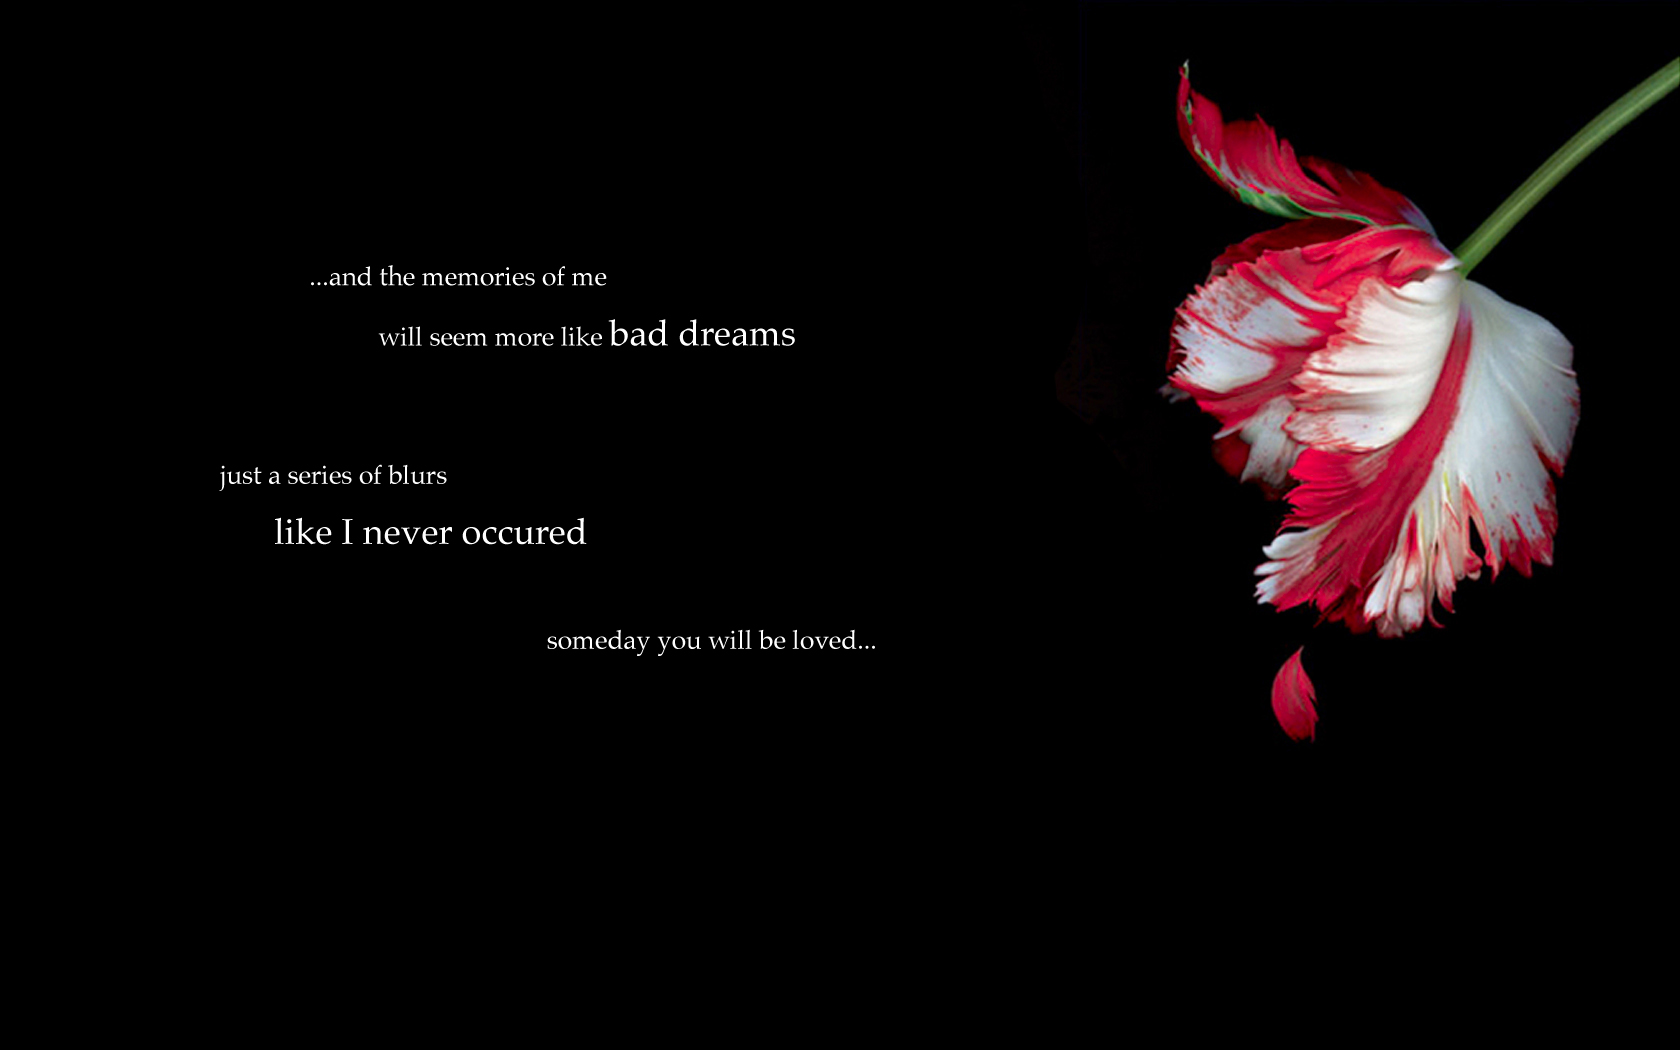 3840x1080 Hd Wallpapers Sad Quote Emo Wallpaper And Background Image 1680x1050 Id 285426